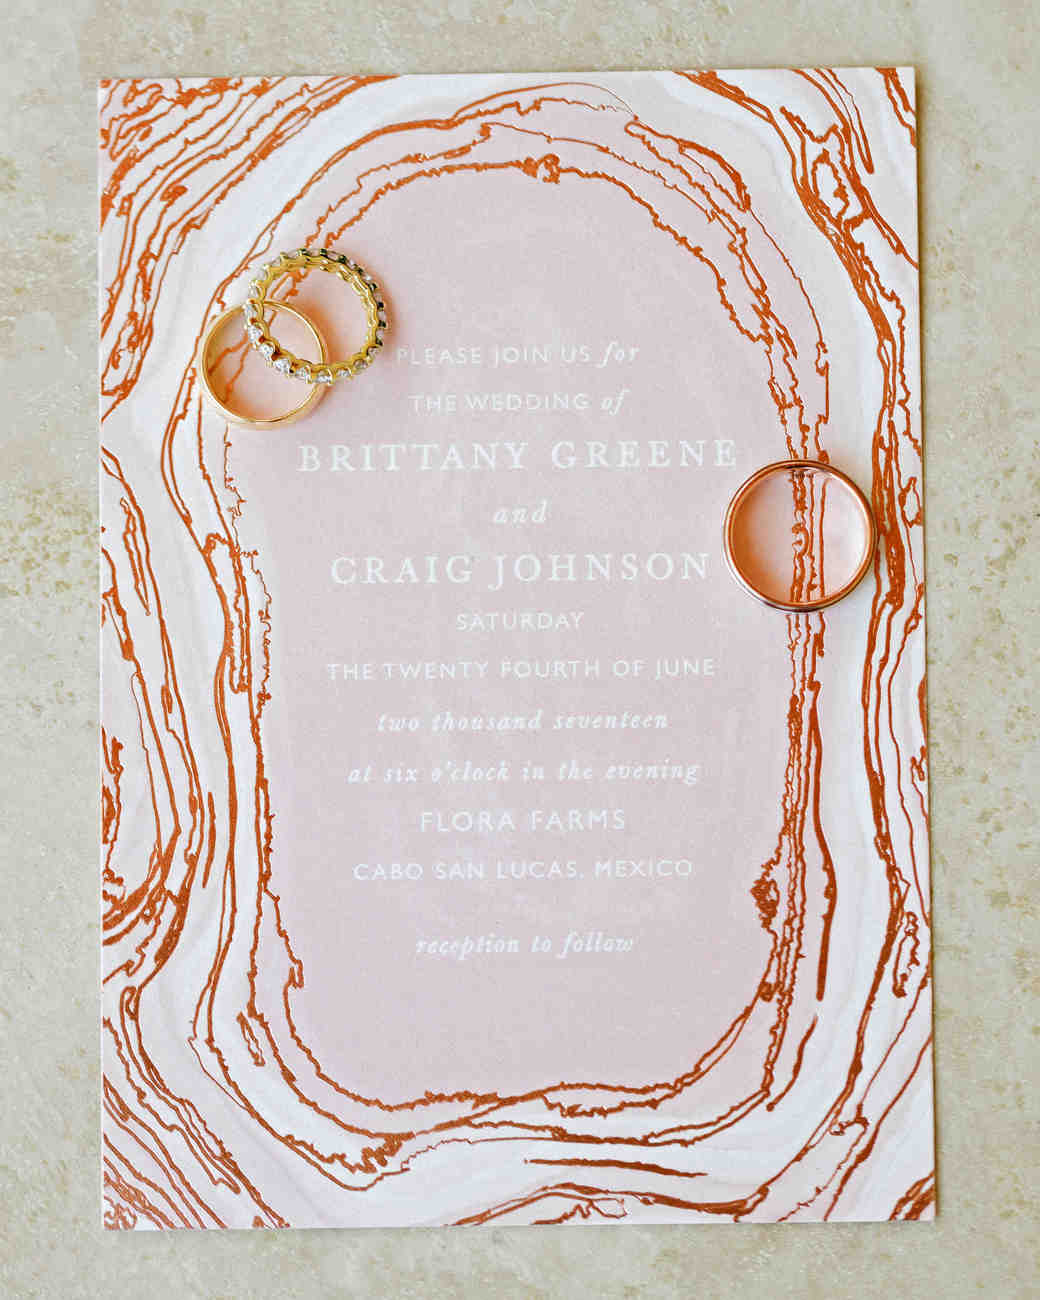 brittany craig wedding invitation rings